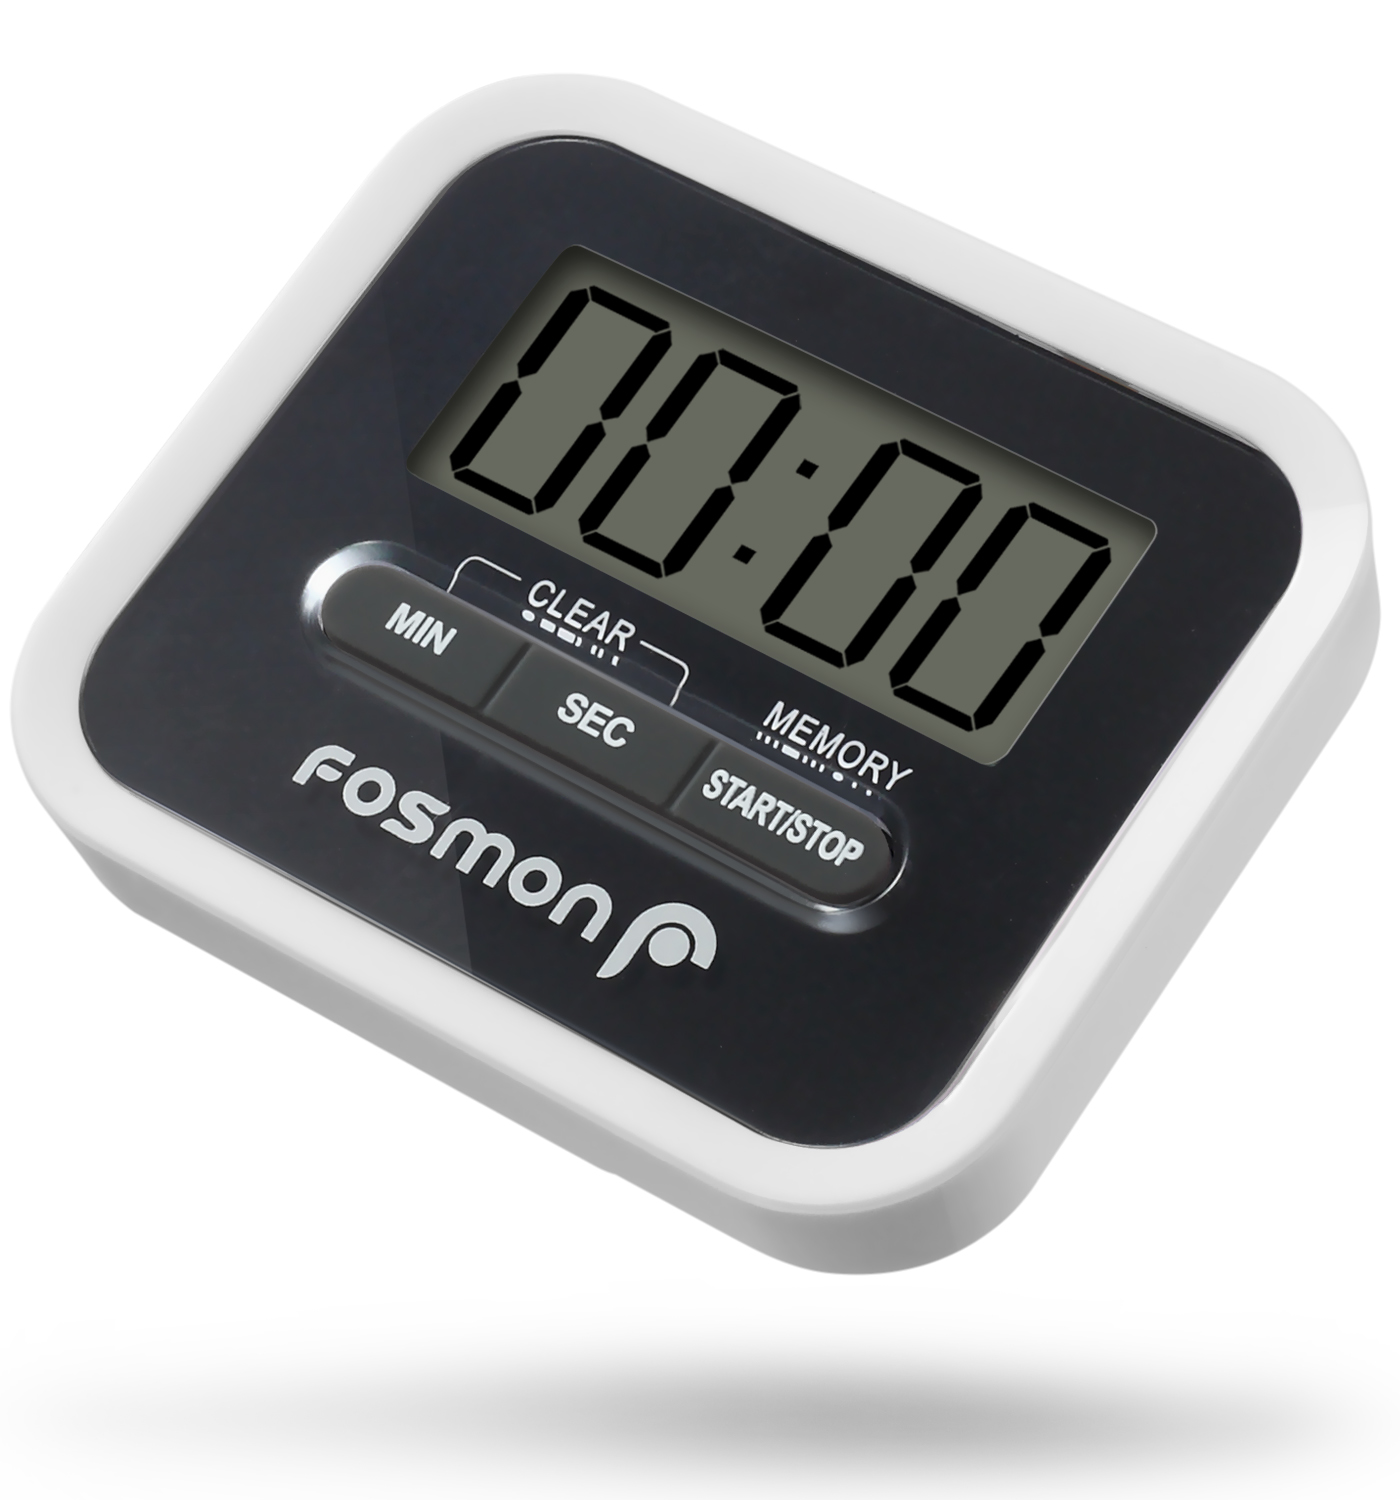 Fosmon Digital Kitchen Timer with Large LCD Display, LoudAlarm,Magnetic Backing,Folding Stand and Belt Clip(White/Black)